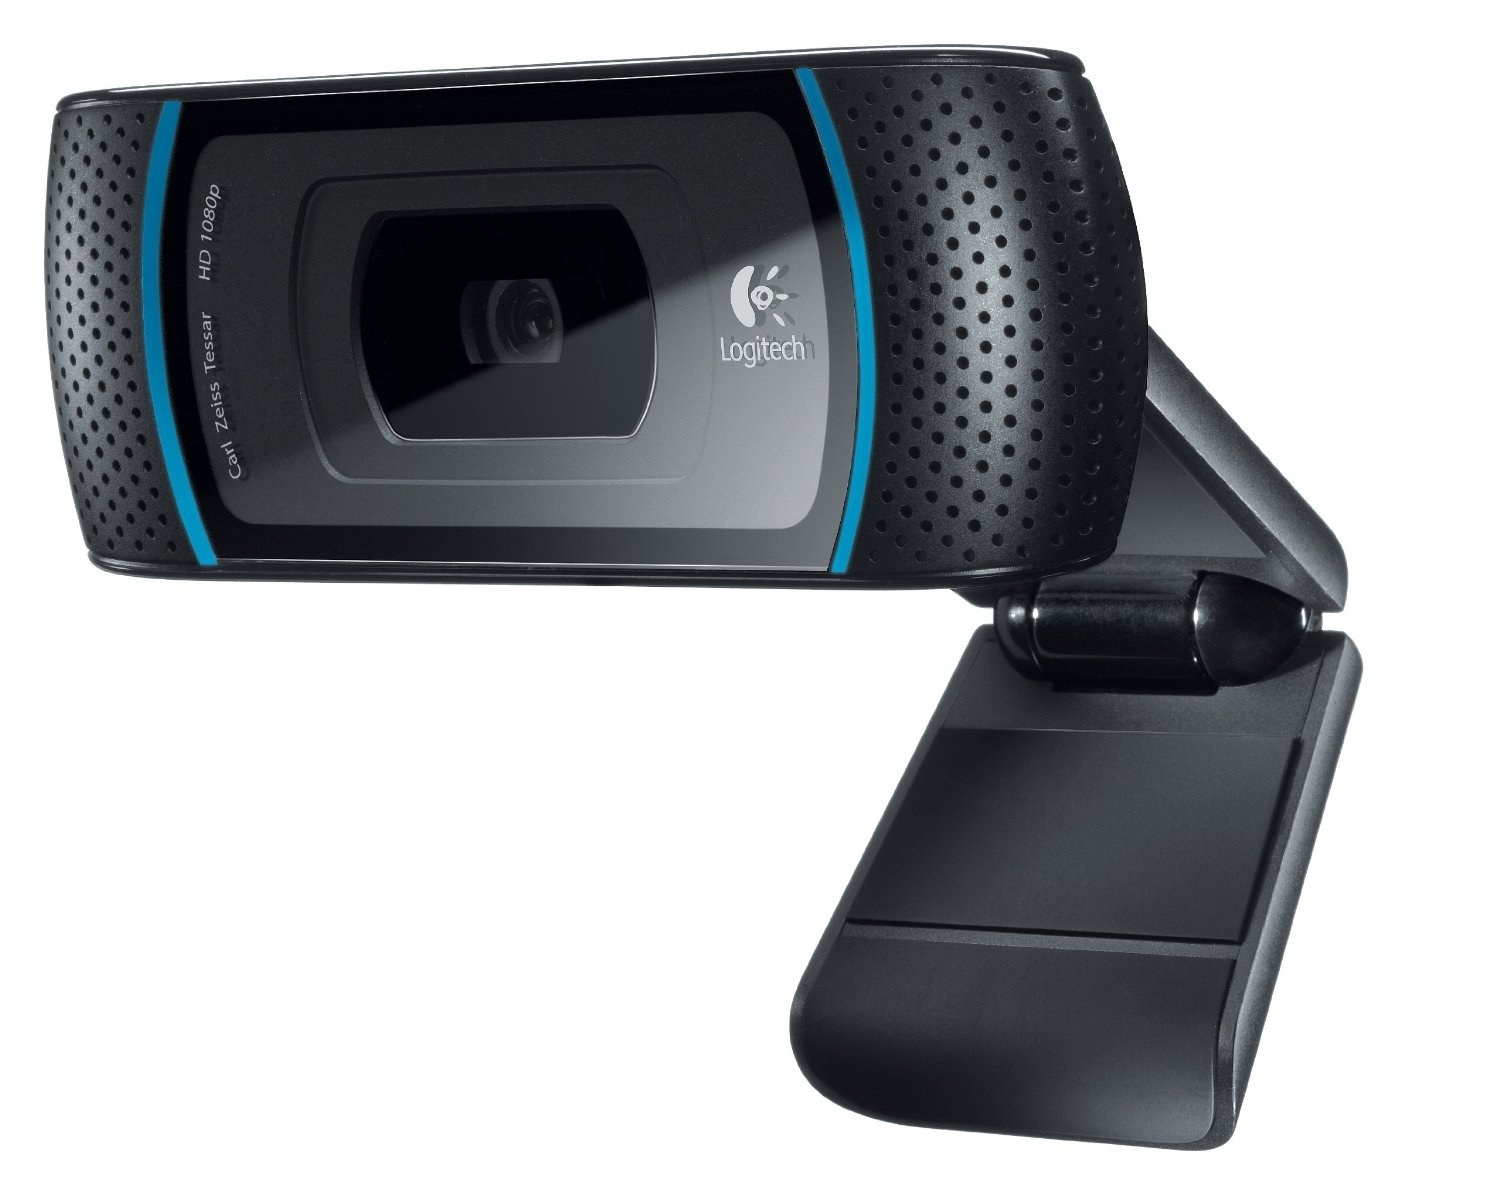 Logitech Webcam C910 review